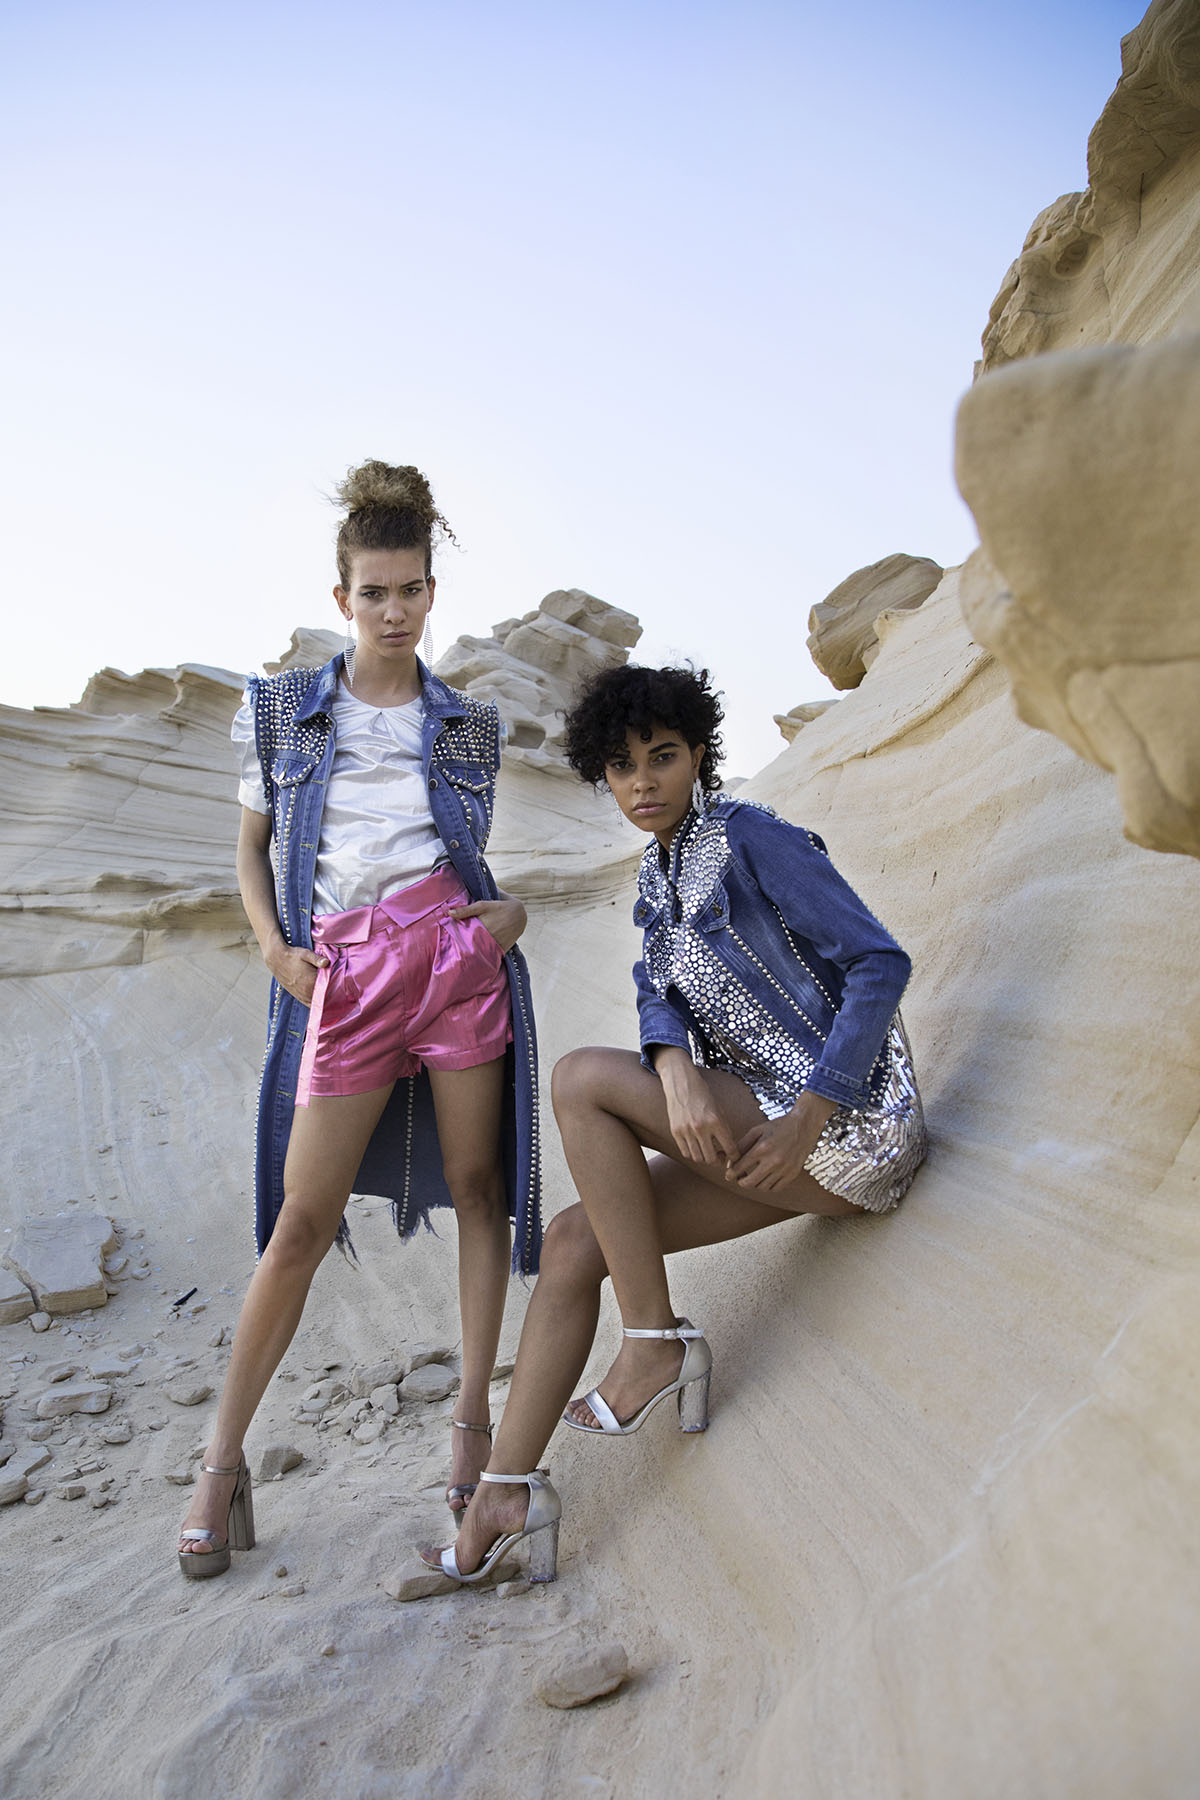 Fashion editorial of Atelier Zuhra denim collection at the Fossil Dunes in Abu Dhabi by Loesje Kessels Fashion Photographer Dubai